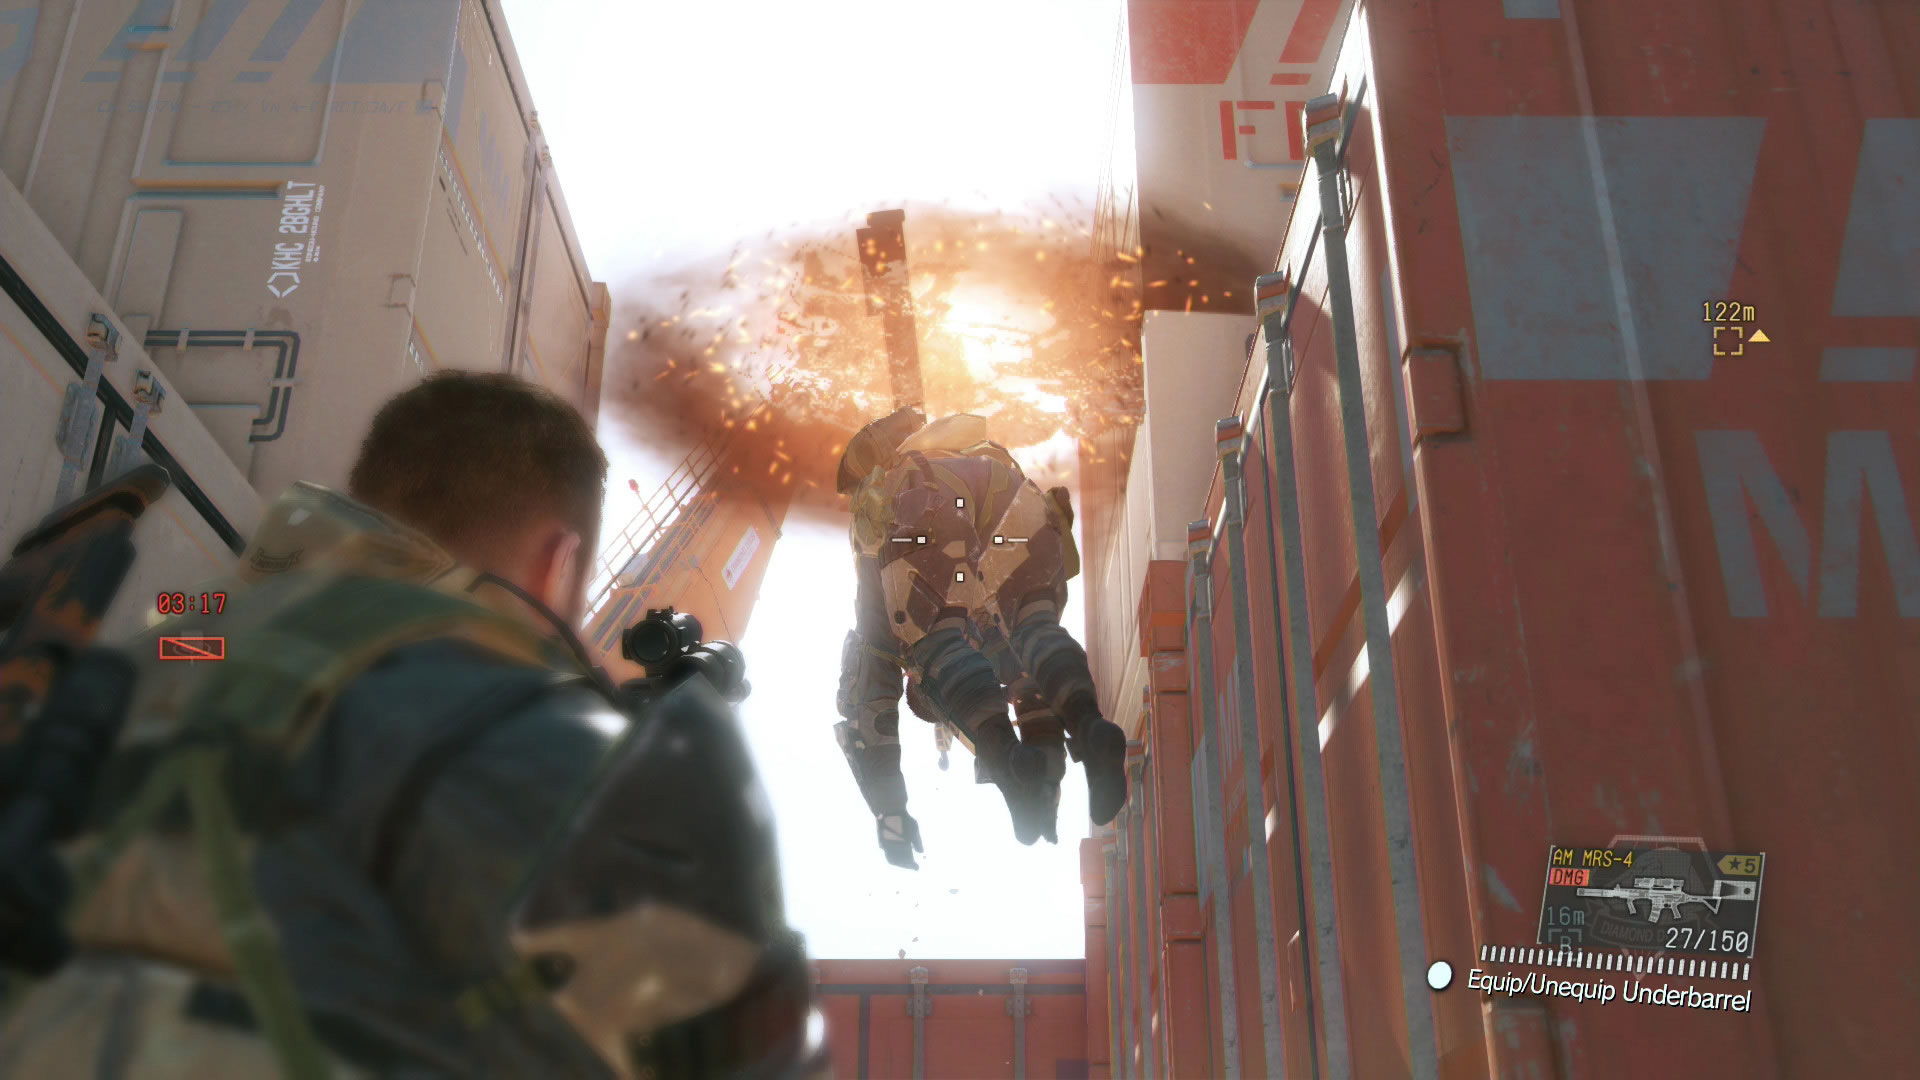 Metal-Gear-Solid-V-The-Phantom-Pain-Screenshot-Gamescom-2015-9